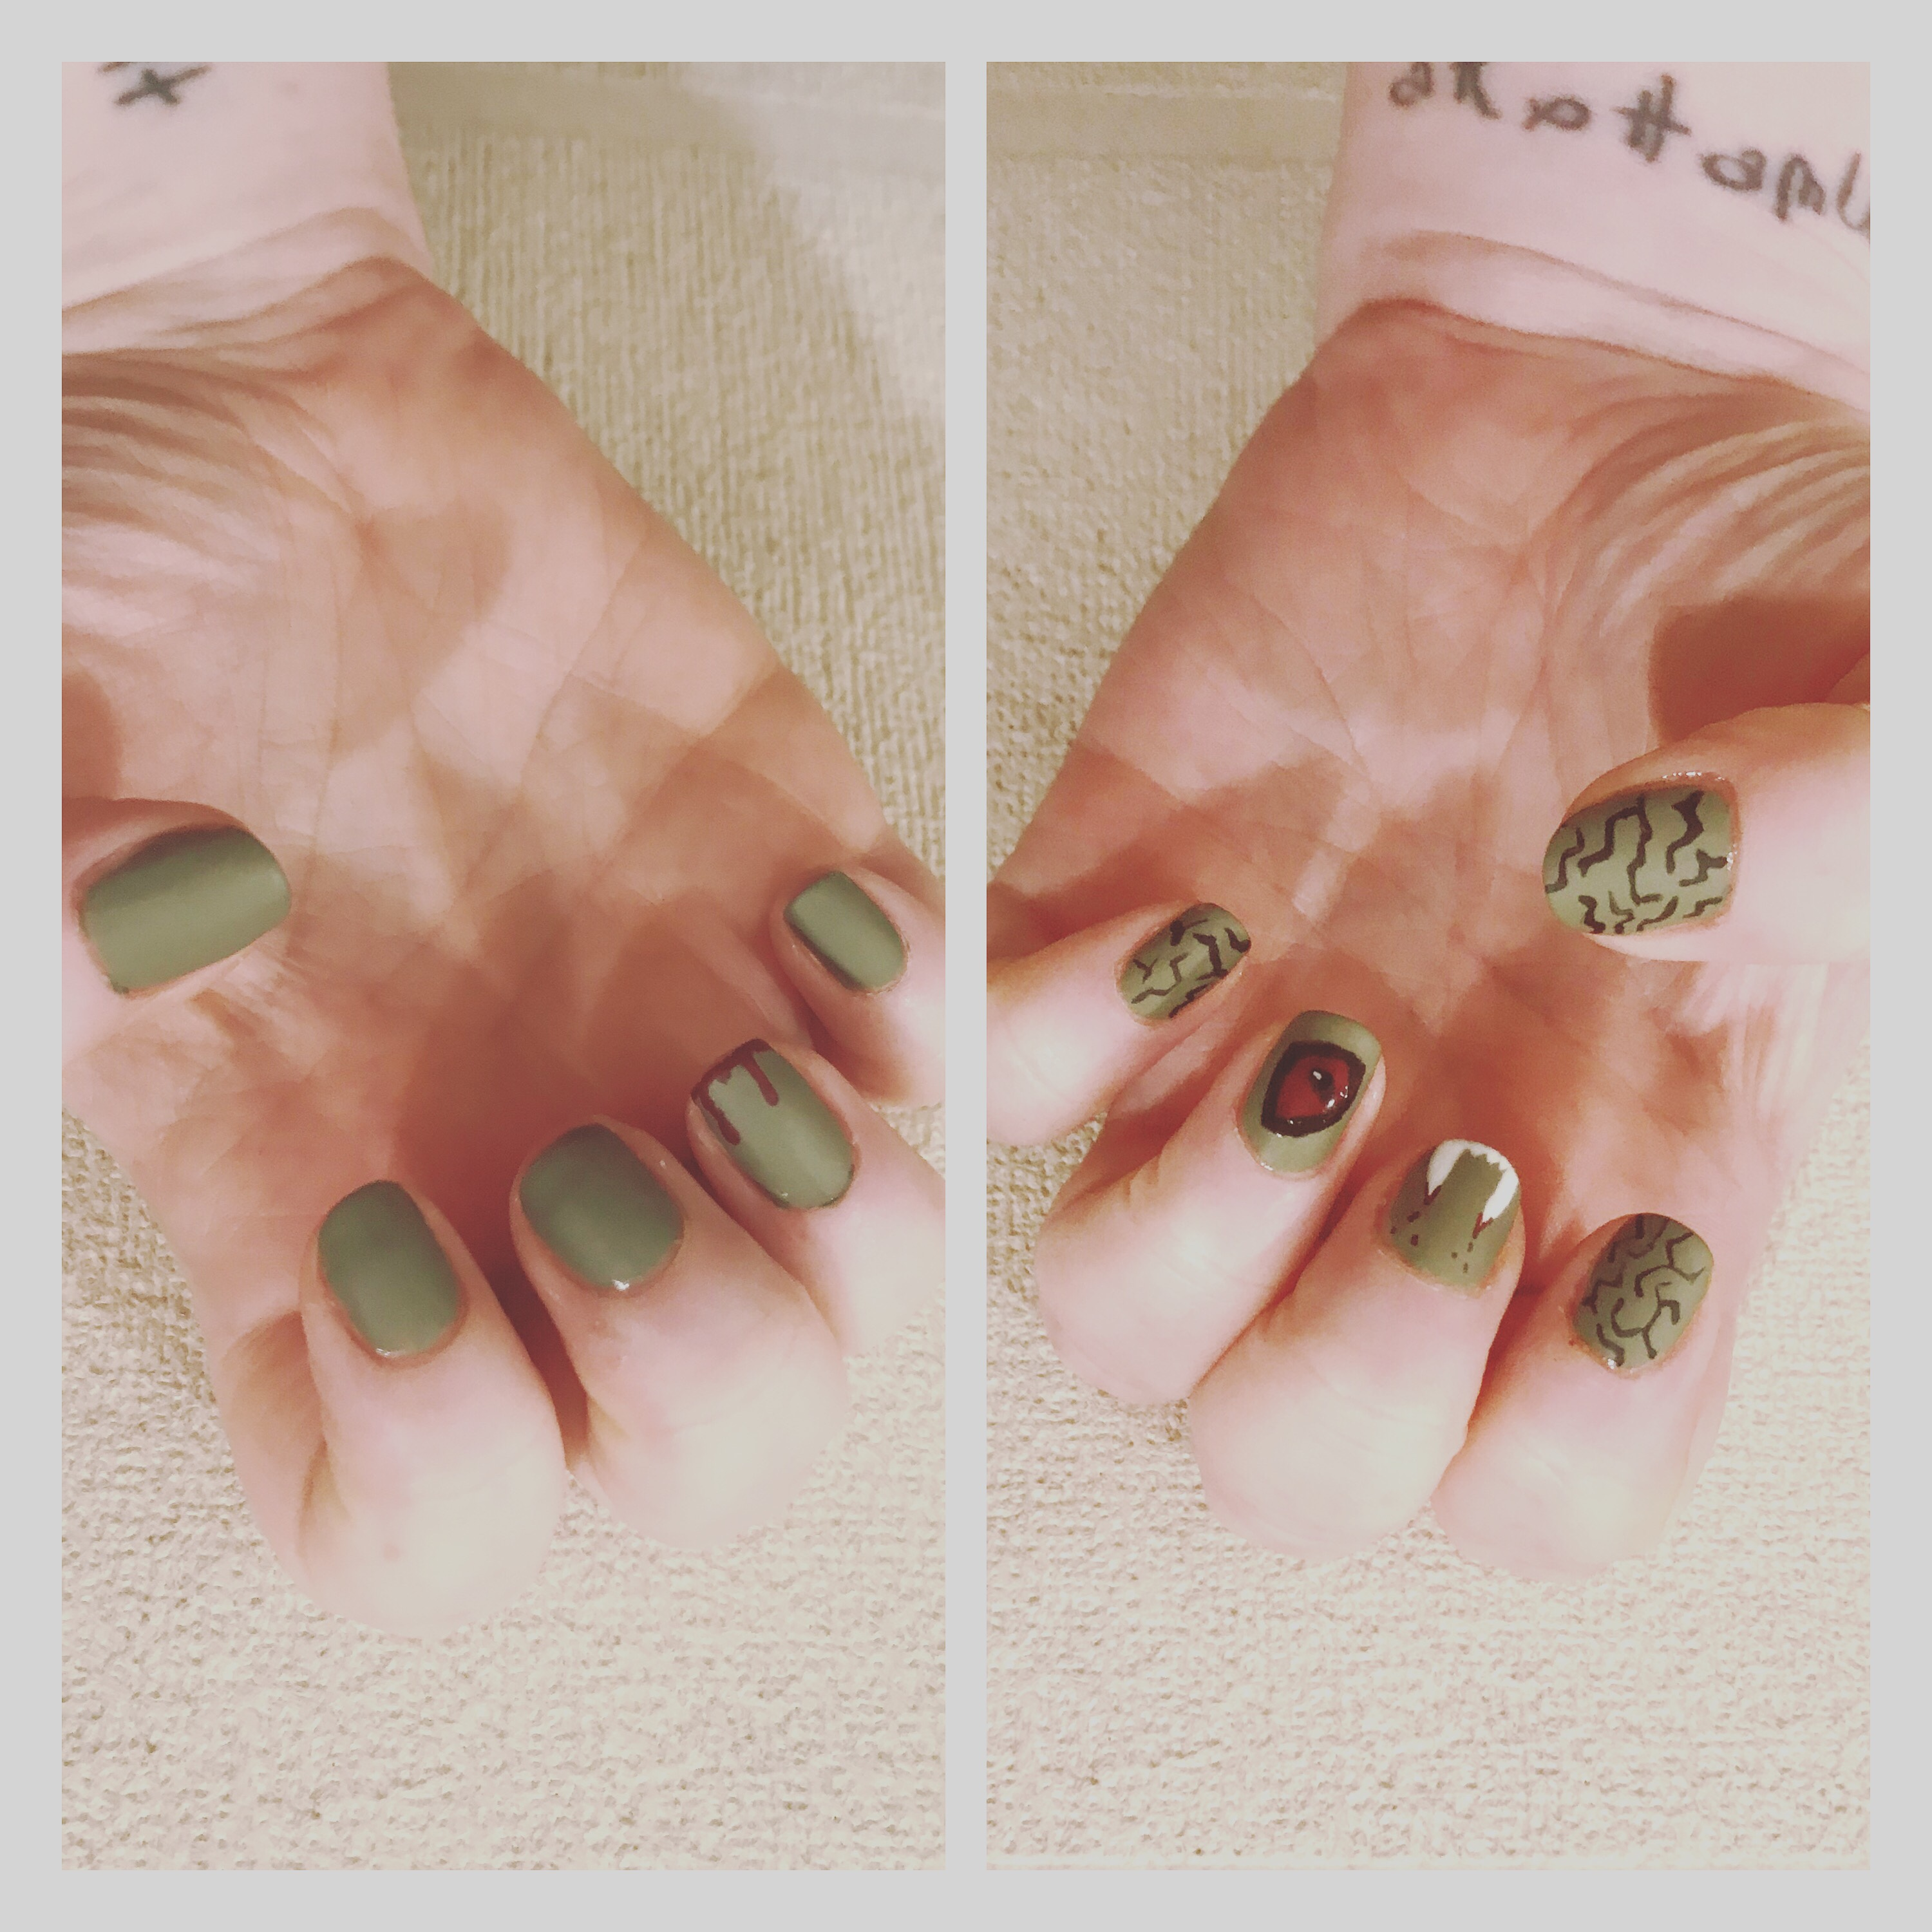 Monster nail art, ly h Kerr